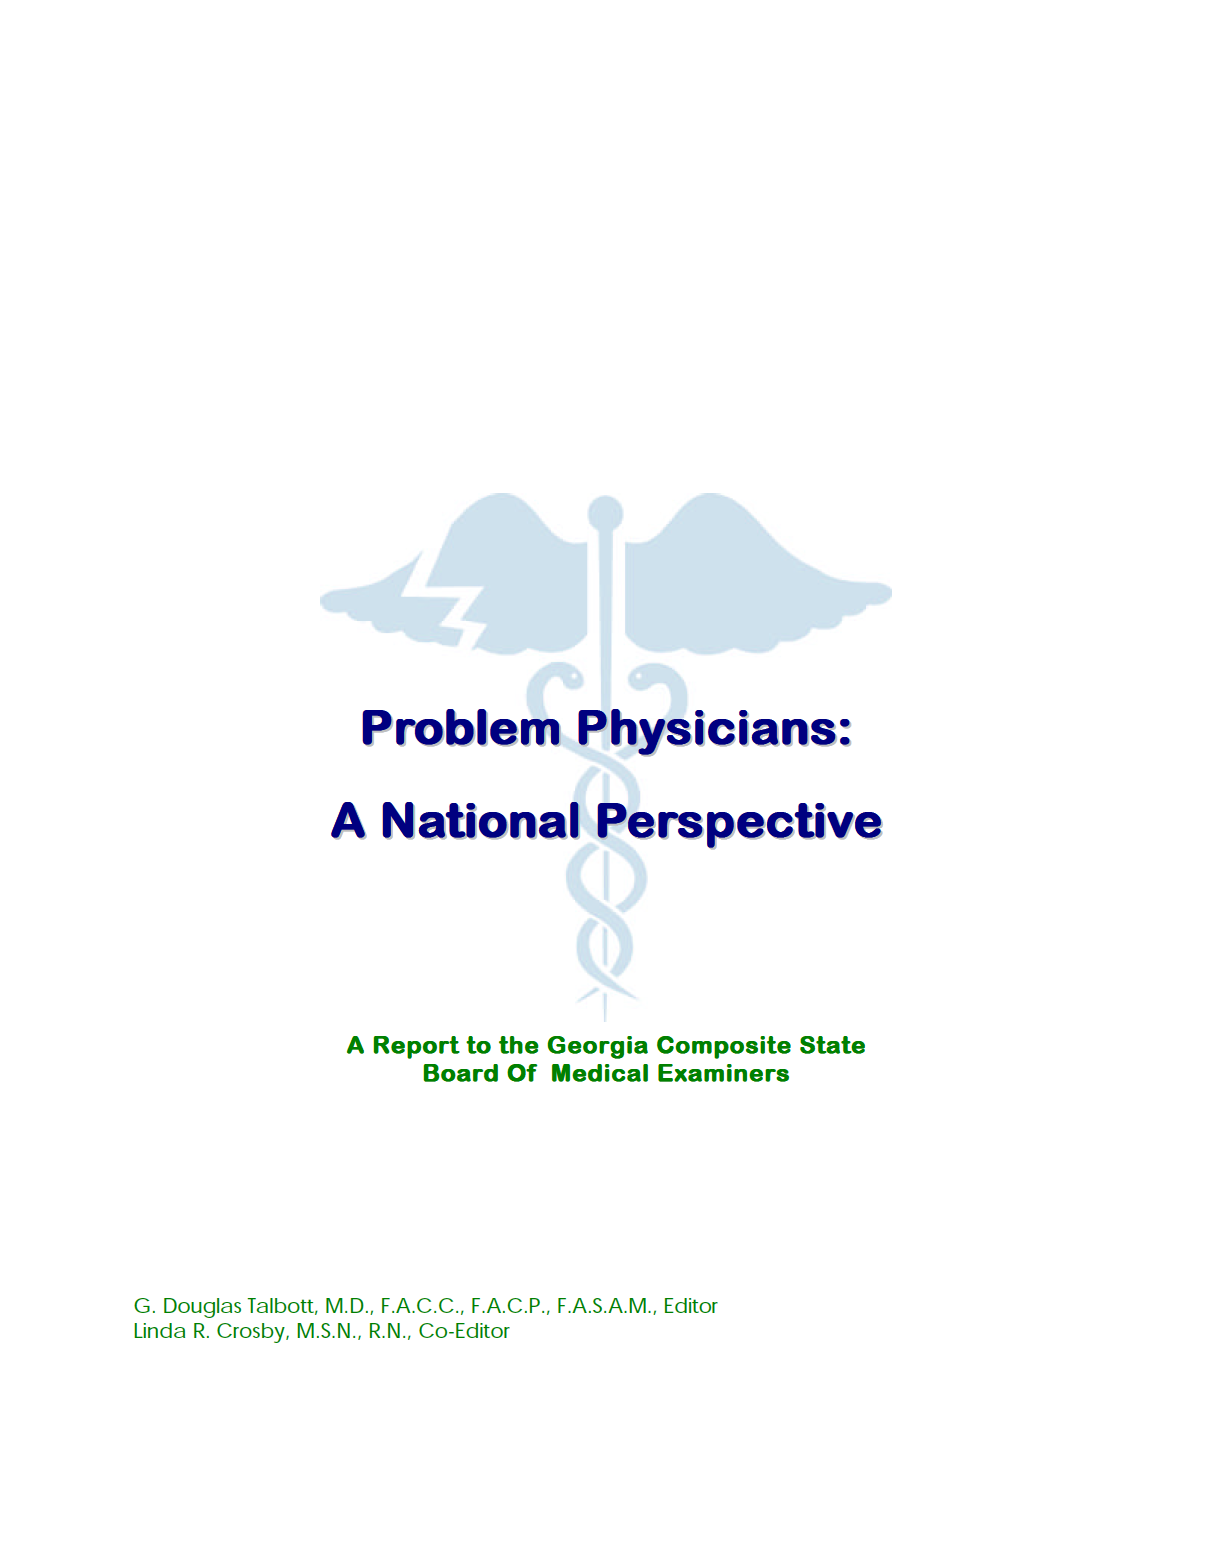 cover for problem physicians.png